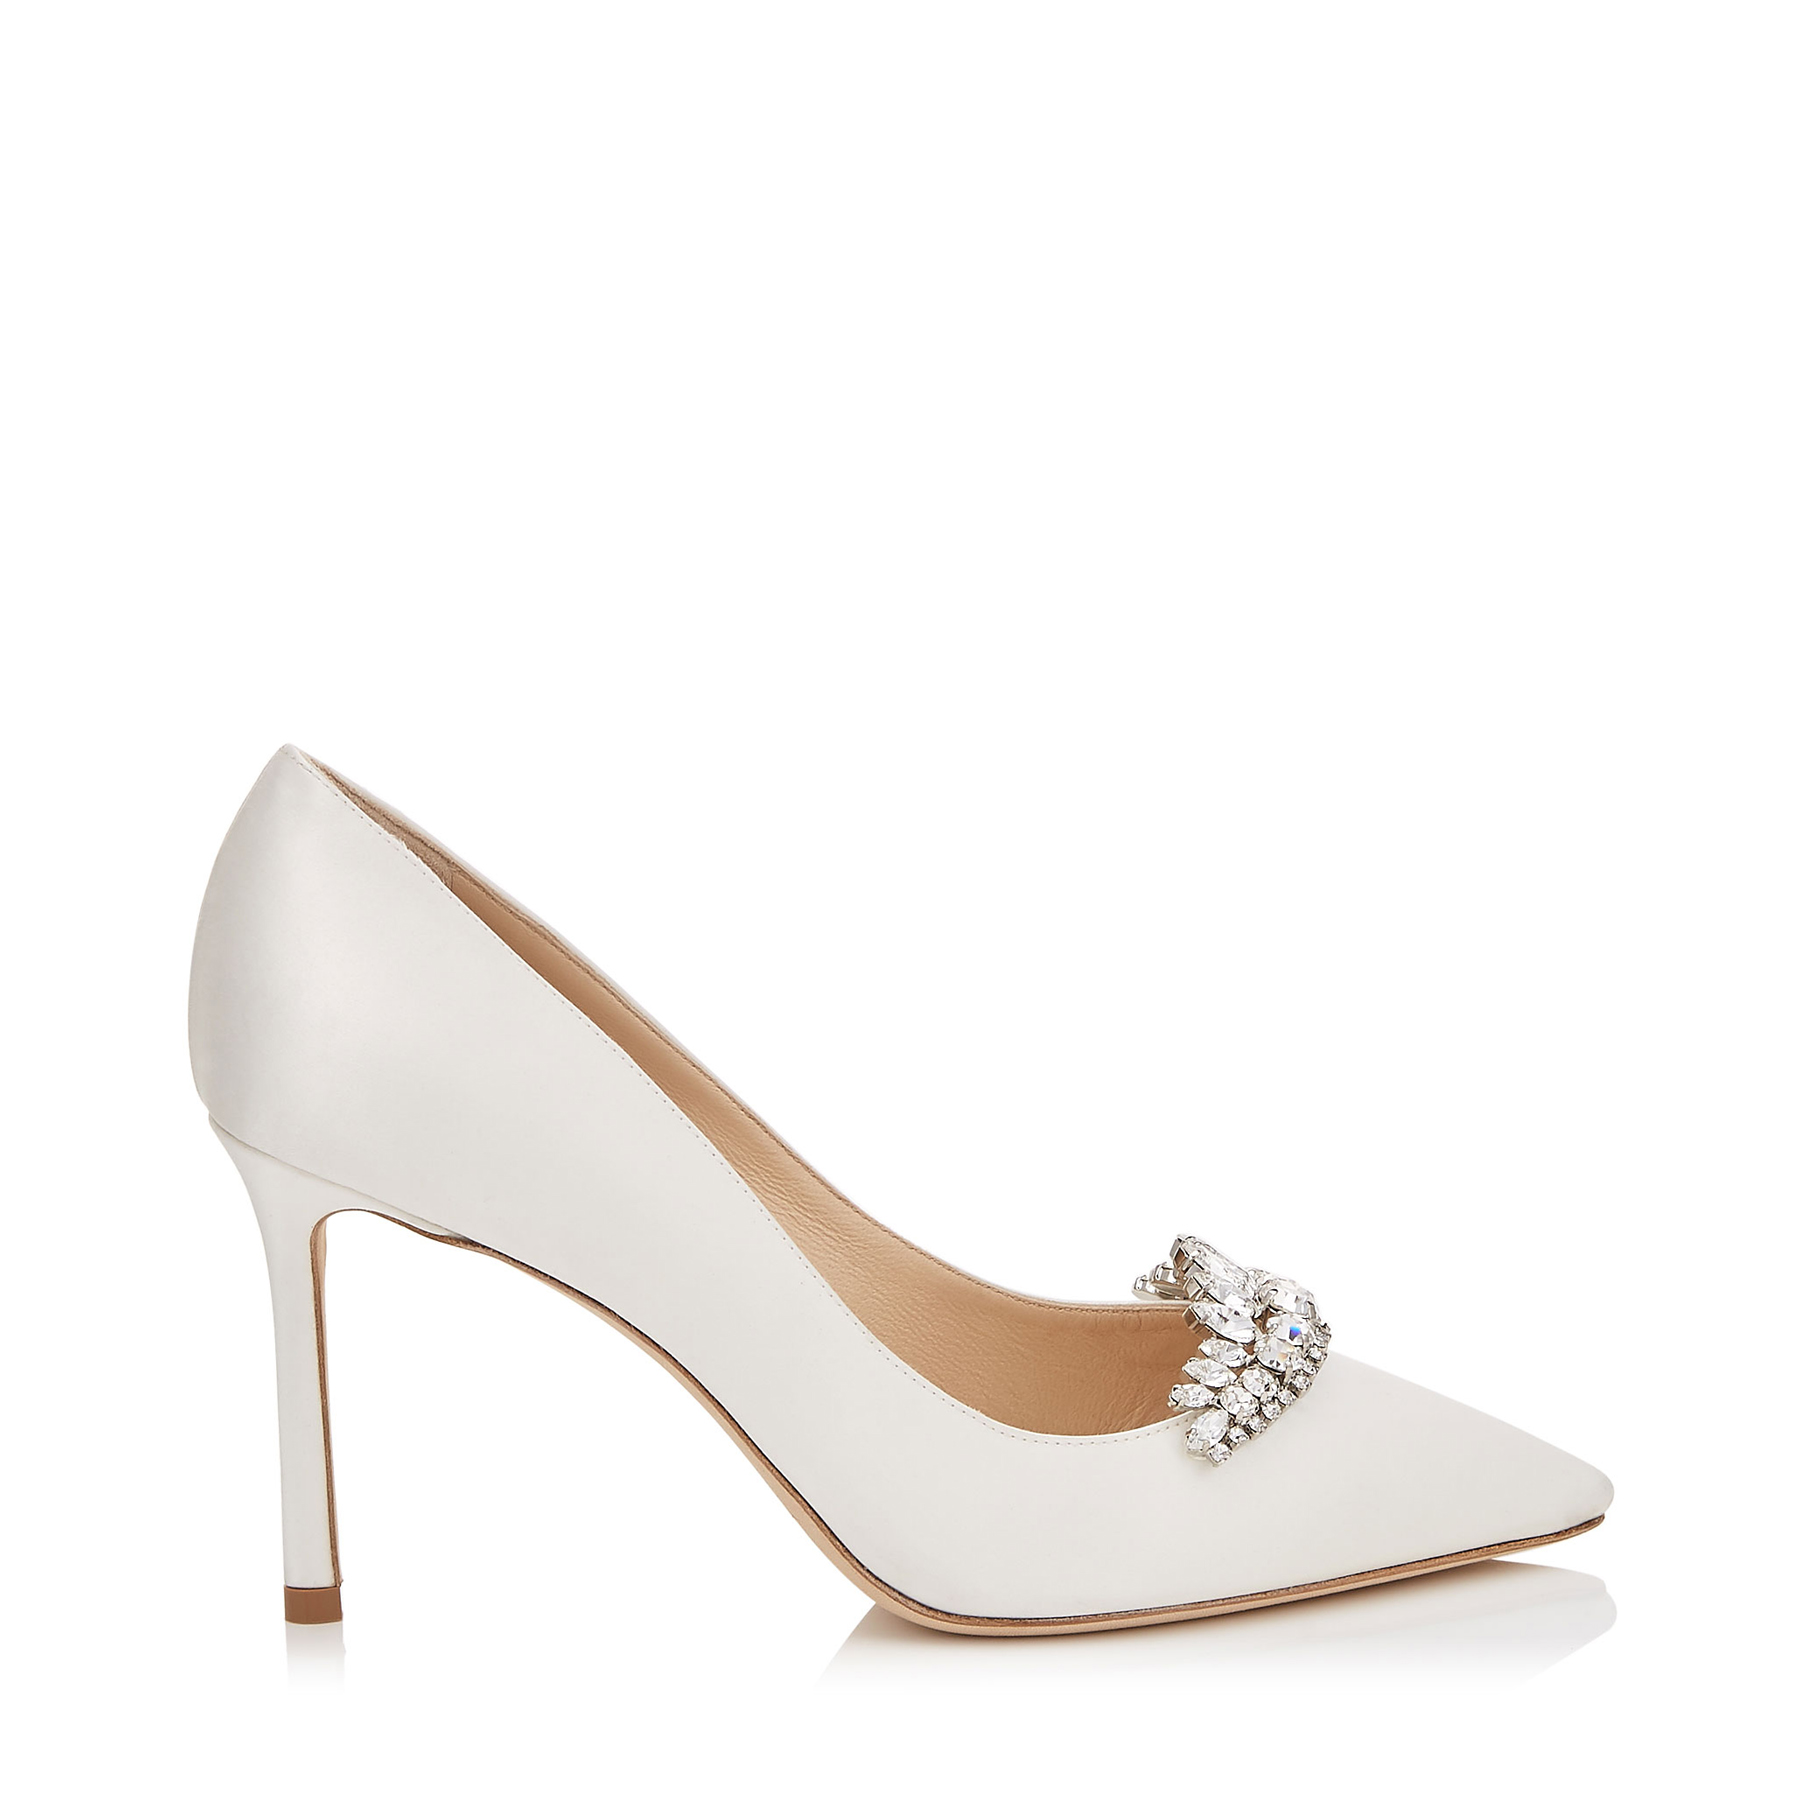 ROMY 85 Ivory Satin Pointy Toe Pumps with Crystal Tiara by Jimmy Choo